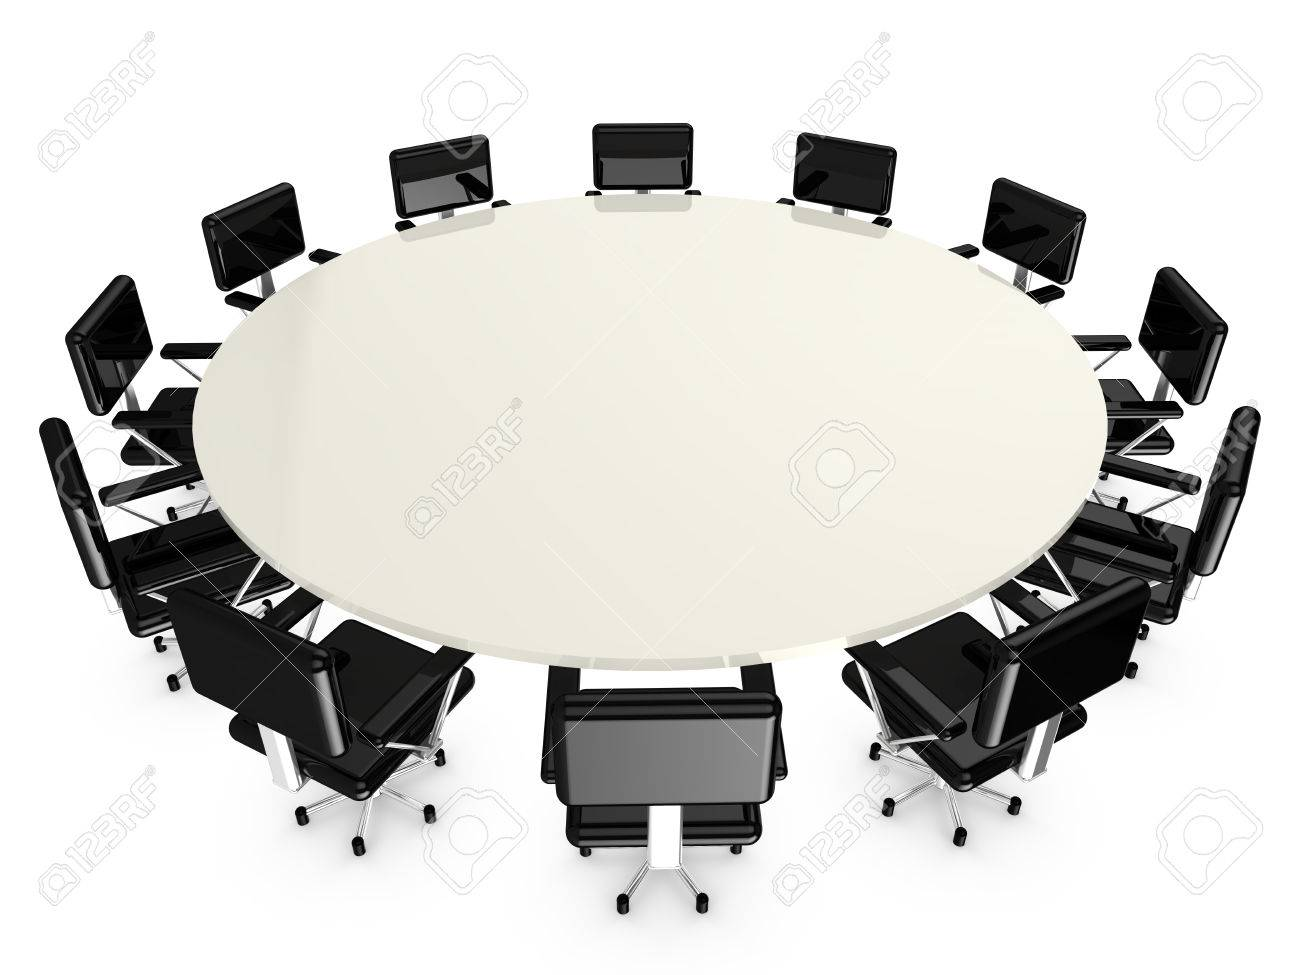 Round White Conference Table With Black Office Armchairs On - Round conference table for 12